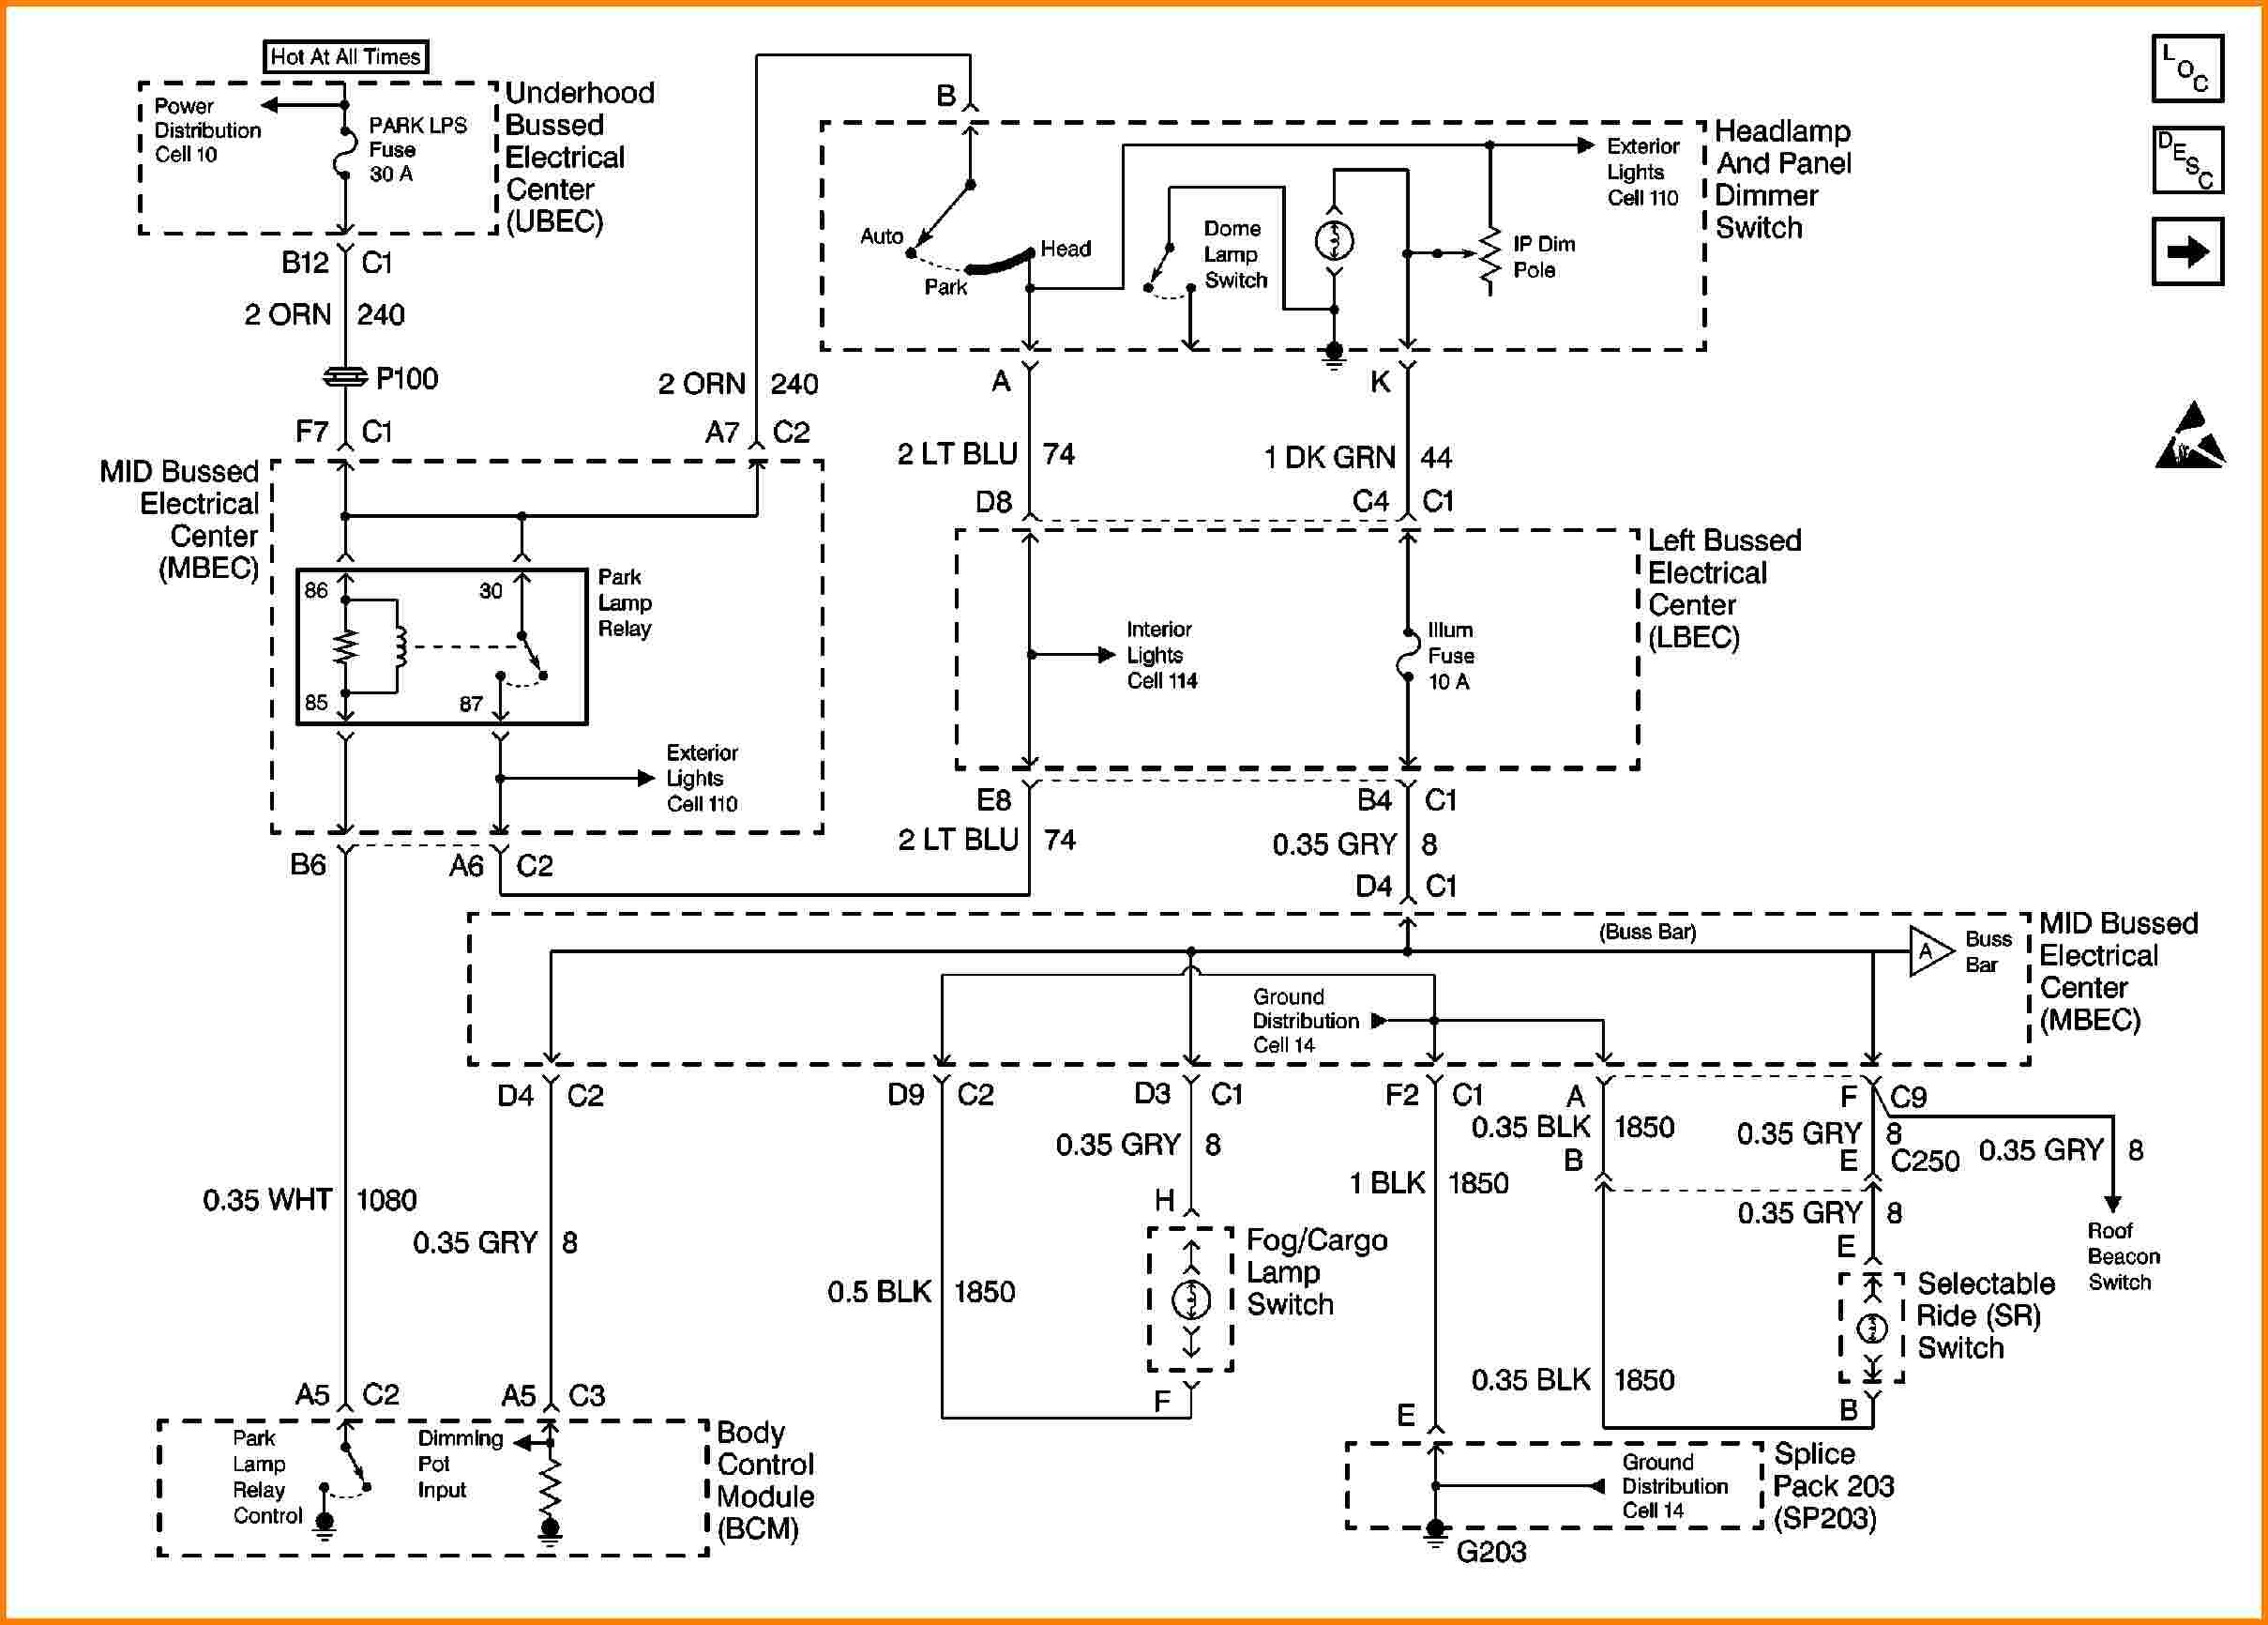 Wiring Diagram Besides On Trailer Ke Wiring Diagram 2006 Chevy Truck on 03 chevy silverado wiper motor, 03 chevy silverado frame, 03 audi a4 wiring diagram, 03 honda civic wiring diagram, 03 lincoln navigator wiring diagram, 89 ford ranger wiring diagram, 2001 chevy venture radio wiring diagram, 03 tahoe wiring diagram, 03 nissan frontier wiring diagram, 03 jeep wrangler wiring diagram, 03 chevy silverado horn, 03 mitsubishi galant wiring diagram, 03 chevy silverado spark plugs, chevy trailer wiring diagram, 03 silverado fuse diagram, 03 pontiac vibe wiring diagram, 03 chevy silverado parts, 03 gmc wiring diagram, 03 chevy silverado speedometer, 03 mazda 6 wiring diagram,